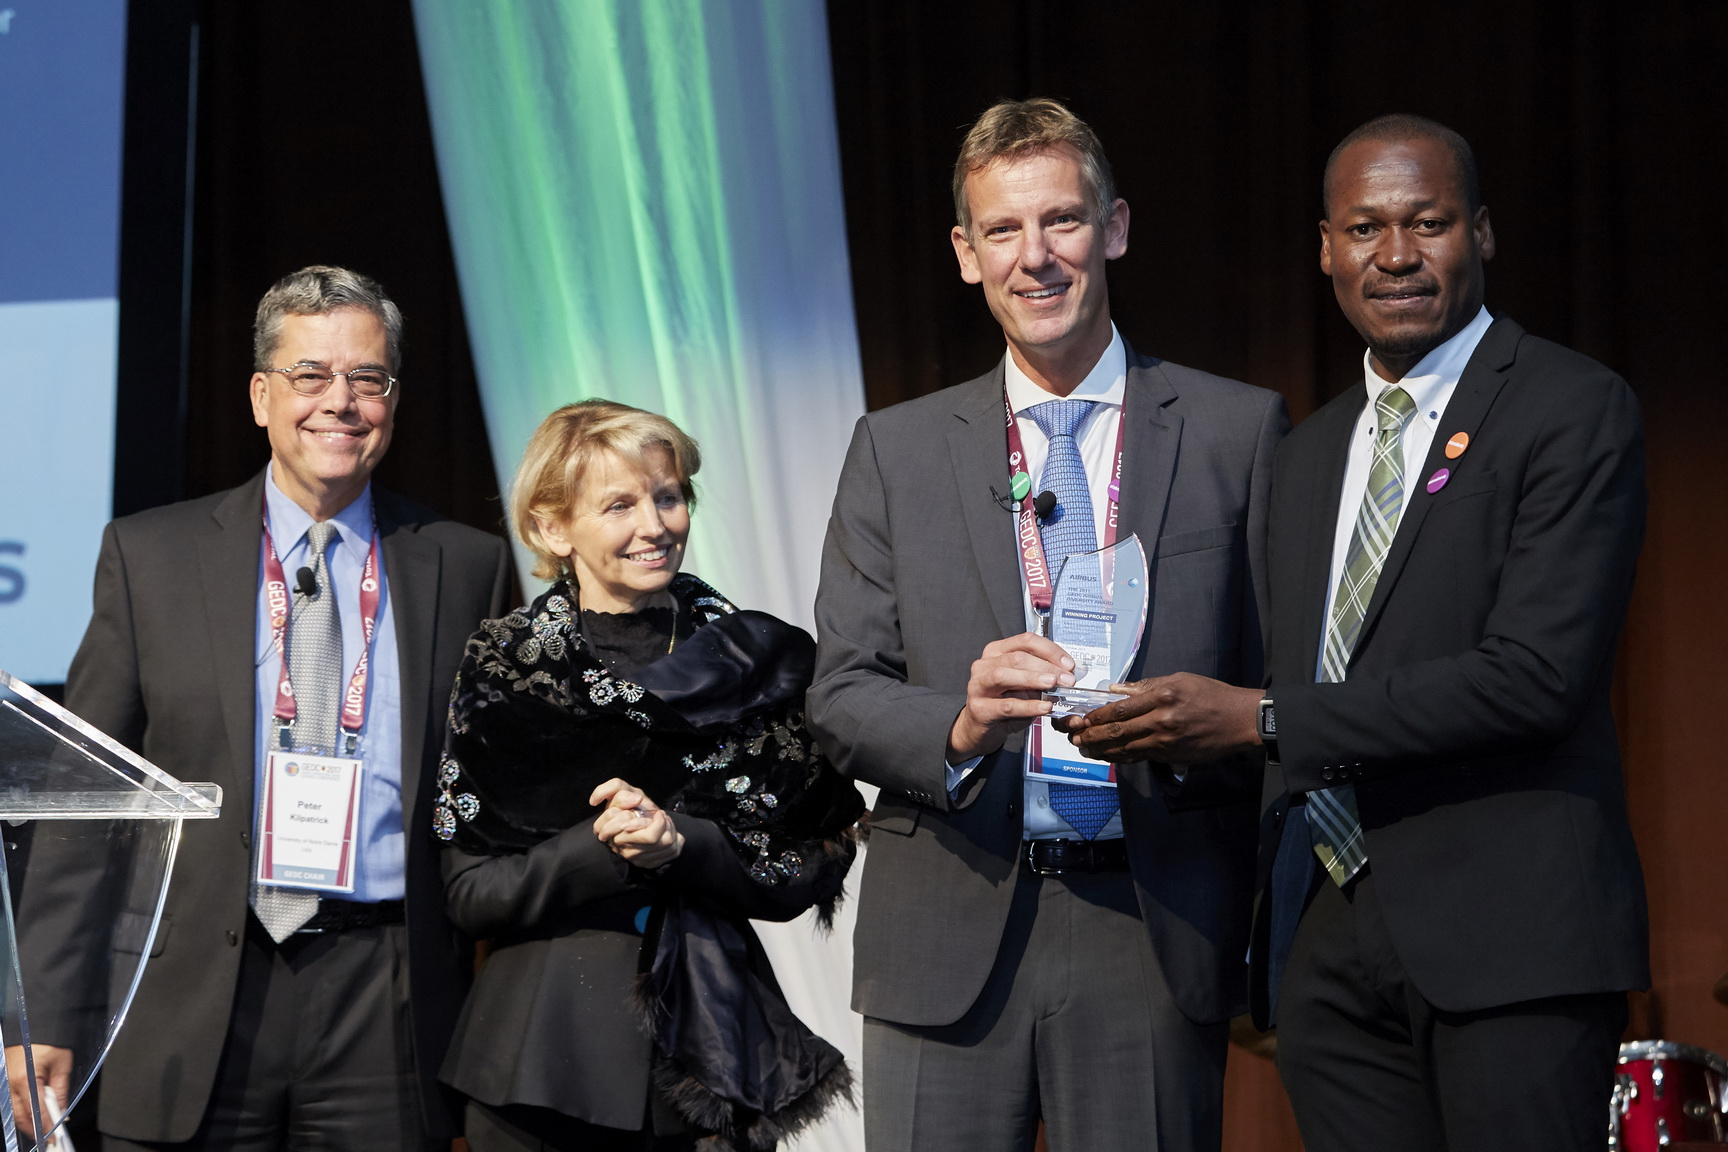 From right to left: Taiwo Tejumola; Jean-Brice Dumont; Marie Paule Roudil, director of the UNESCO Liaison Office, New York; and Peter Kilpatrick. Airbus Photo